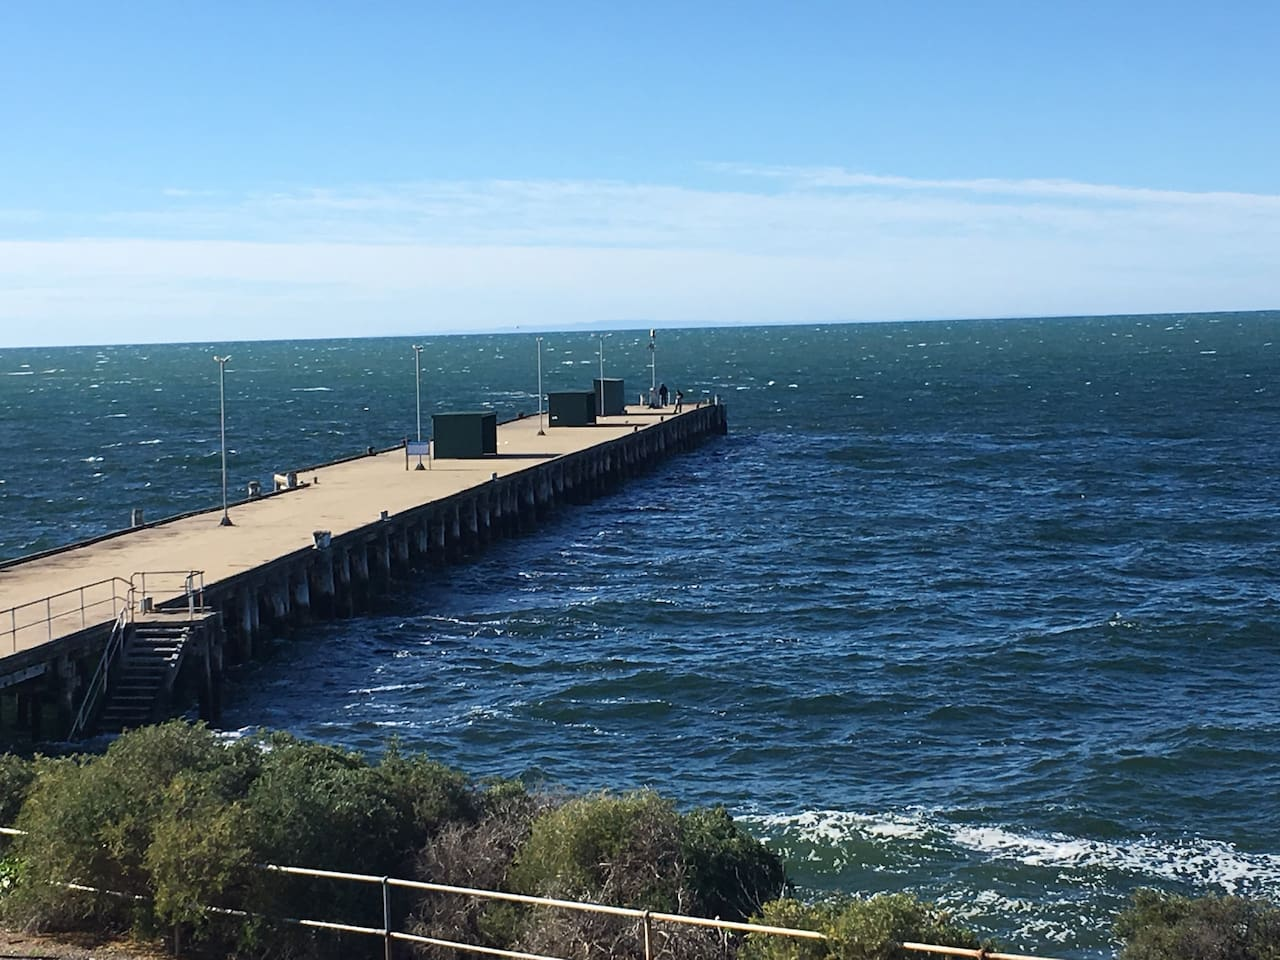 Short walk to the Jetty